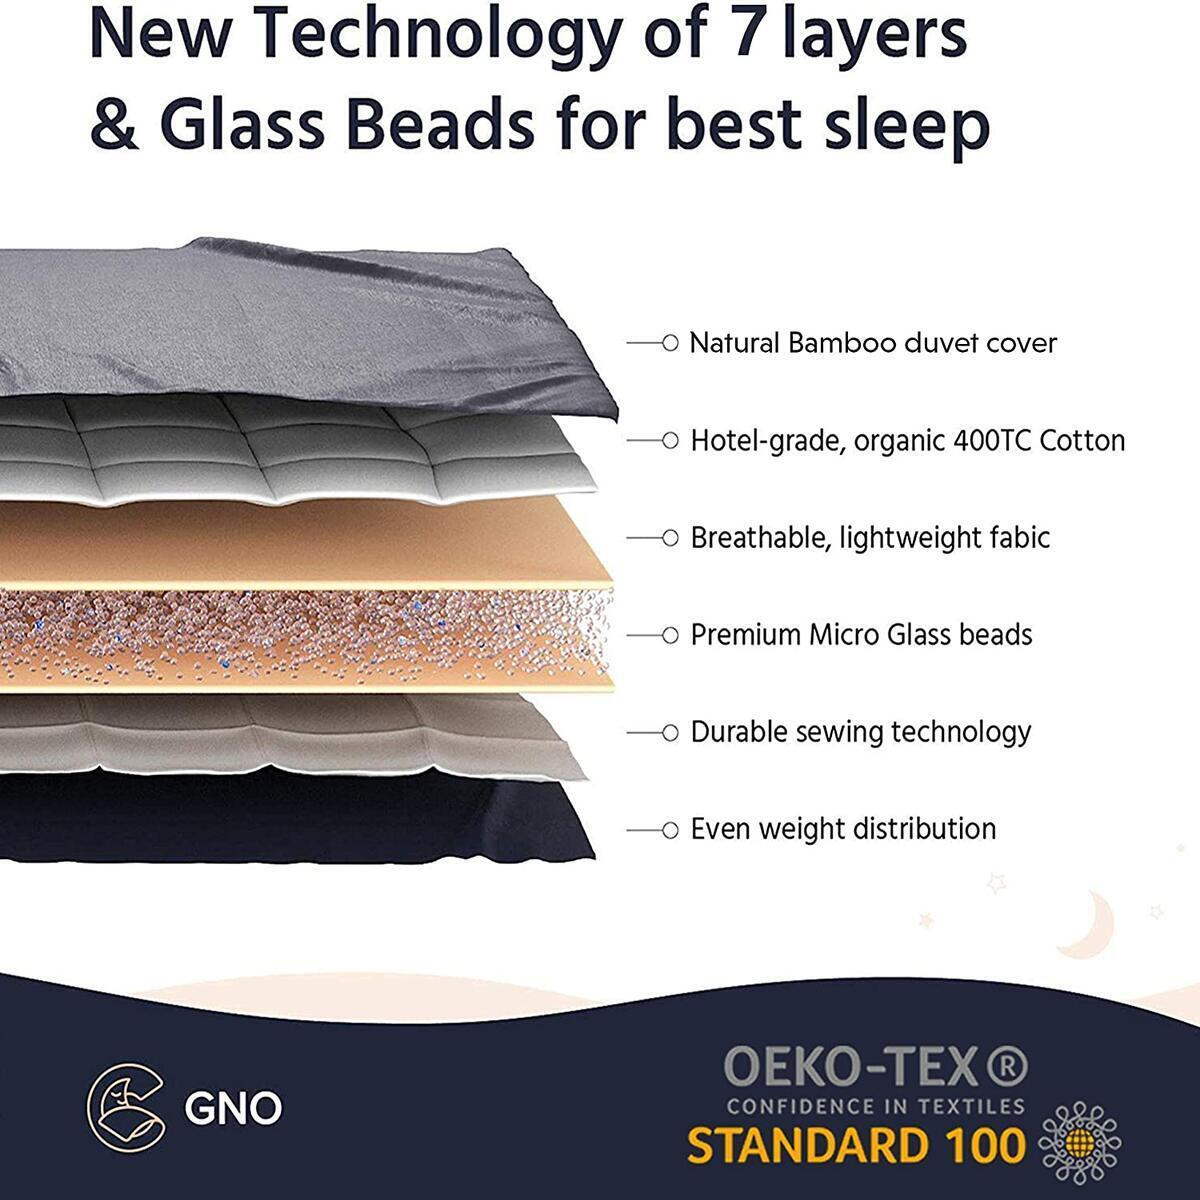 GnO Premium Adult Weighted Blanket & Removable Bamboo Cover - (15 Lbs - 60''x80'' Queen Size)- 100% Oeko Tex Certified Cooling Cotton & Glass Beads- Organic Heavy Blanket- Designed in USA - Dark Grey